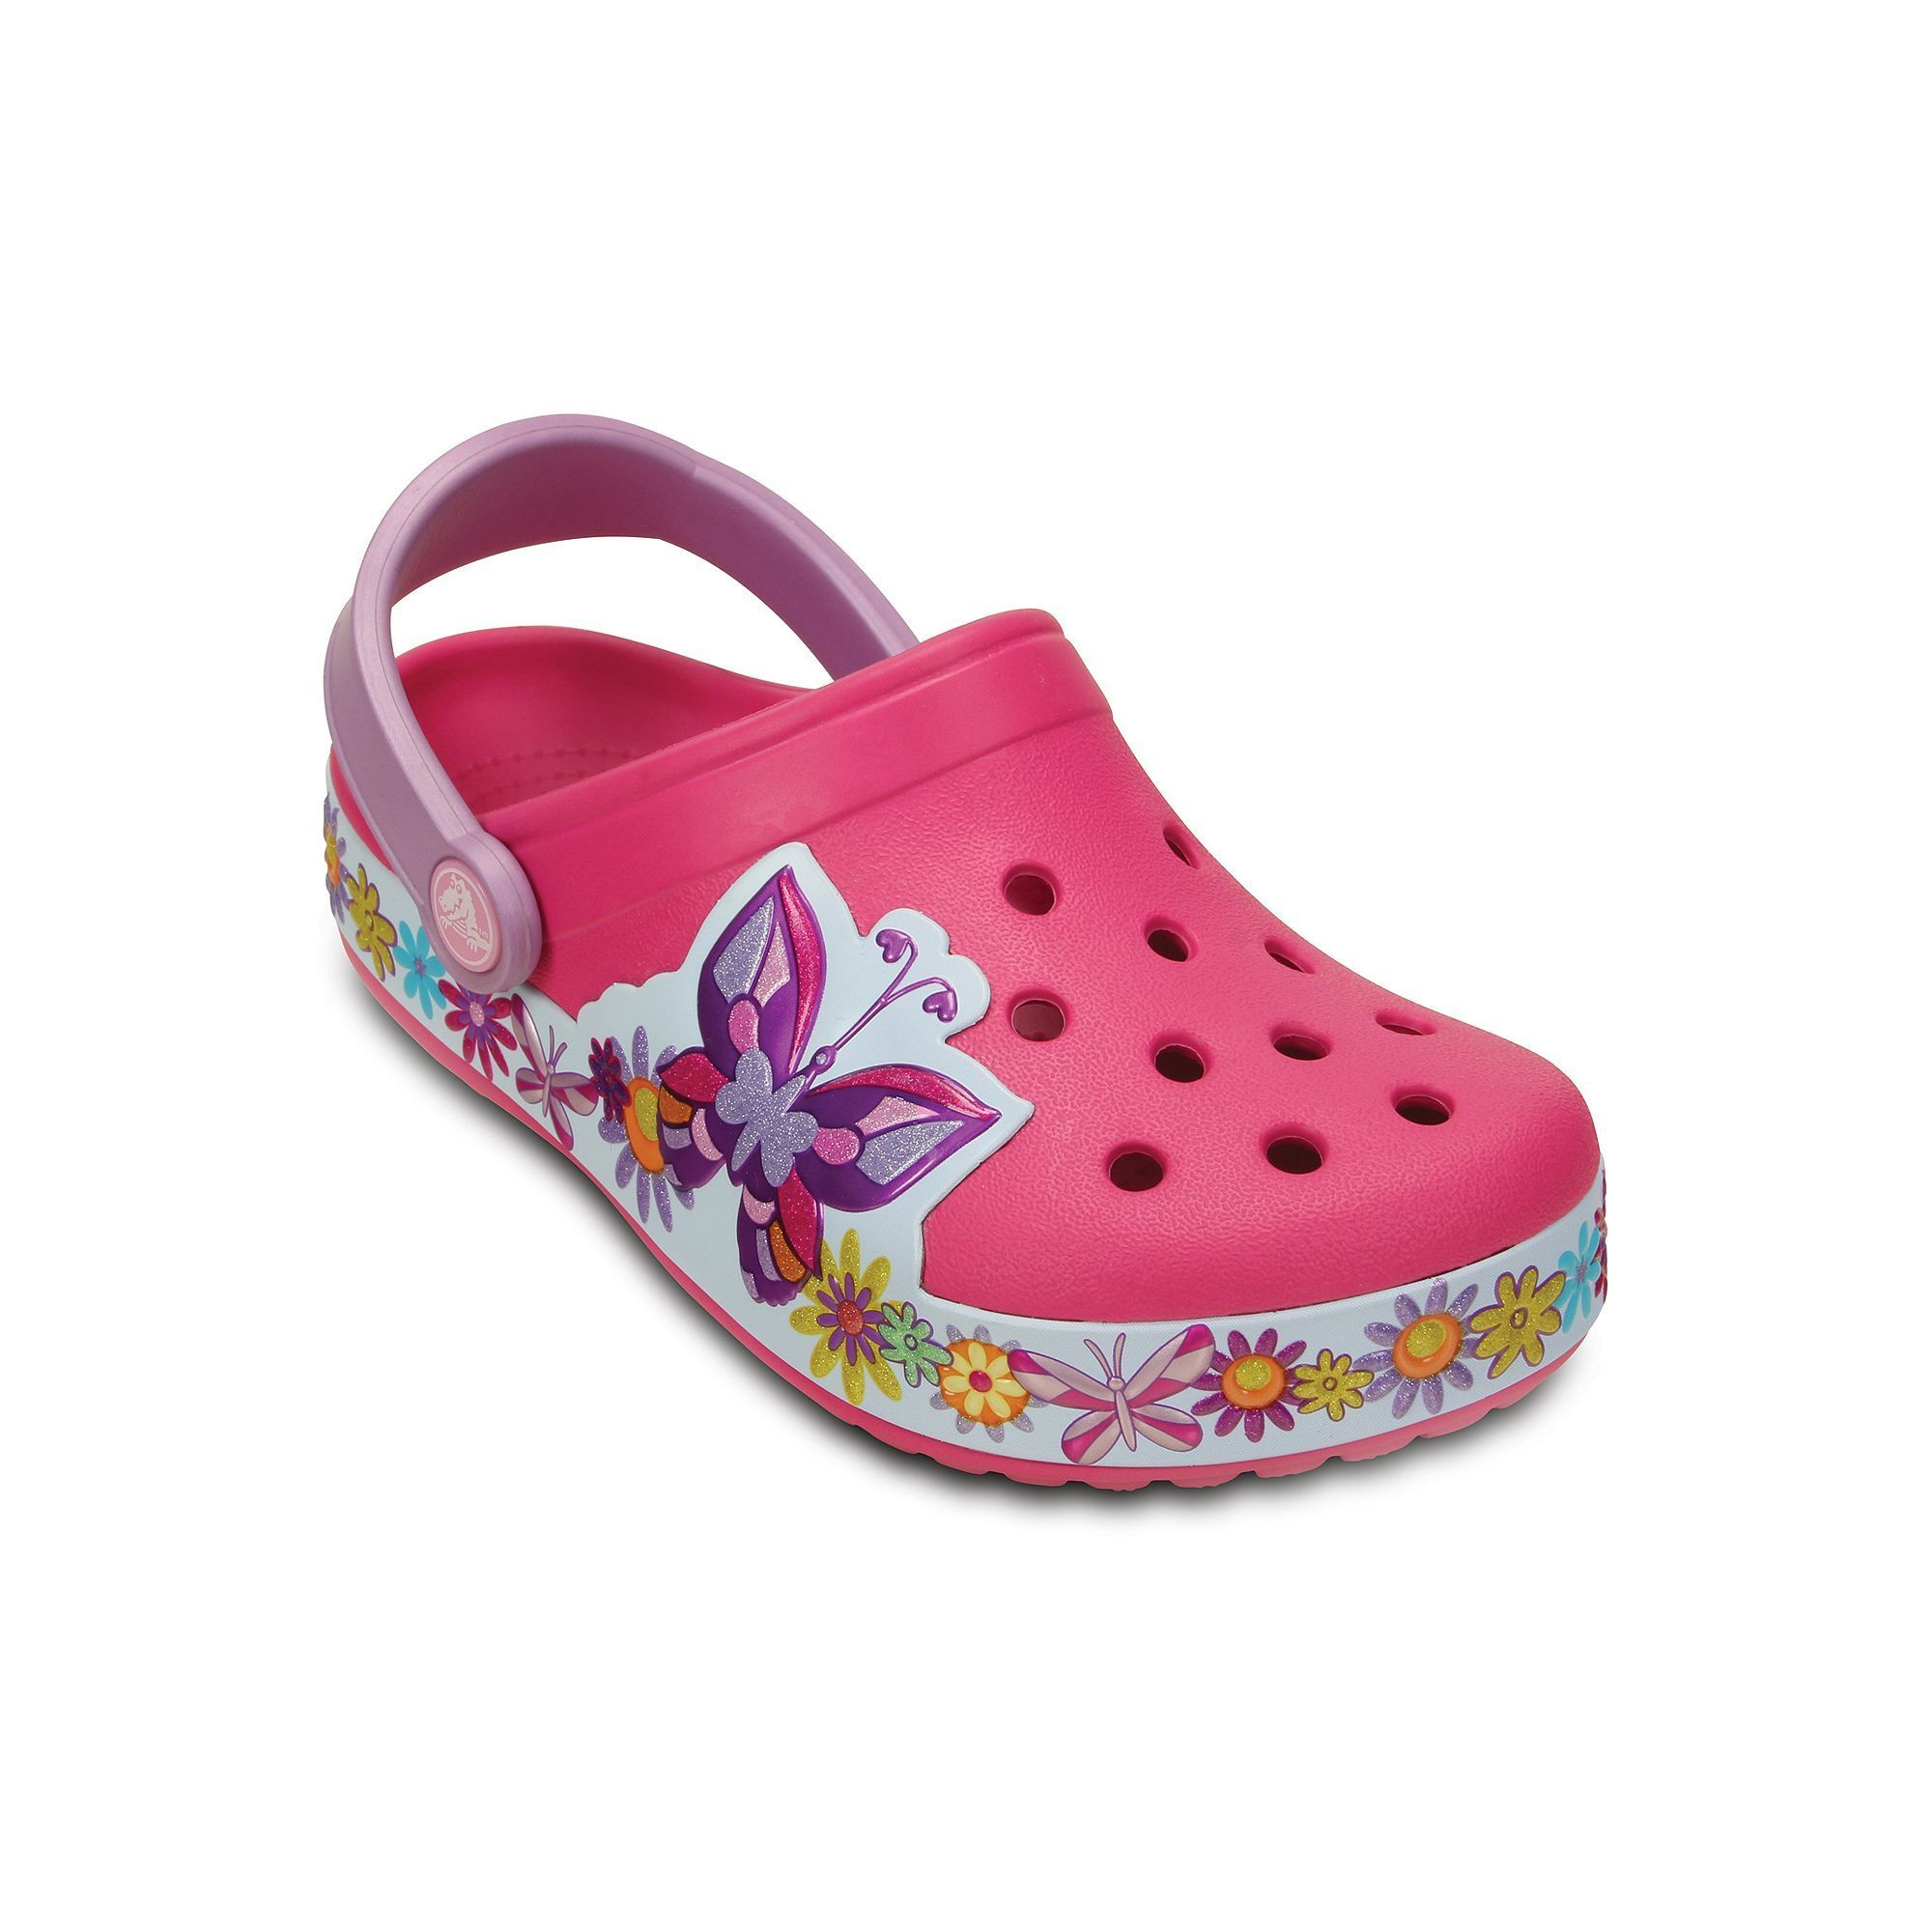 697ae3244177a Crocs Crocband Butterfly Girls  Clogs